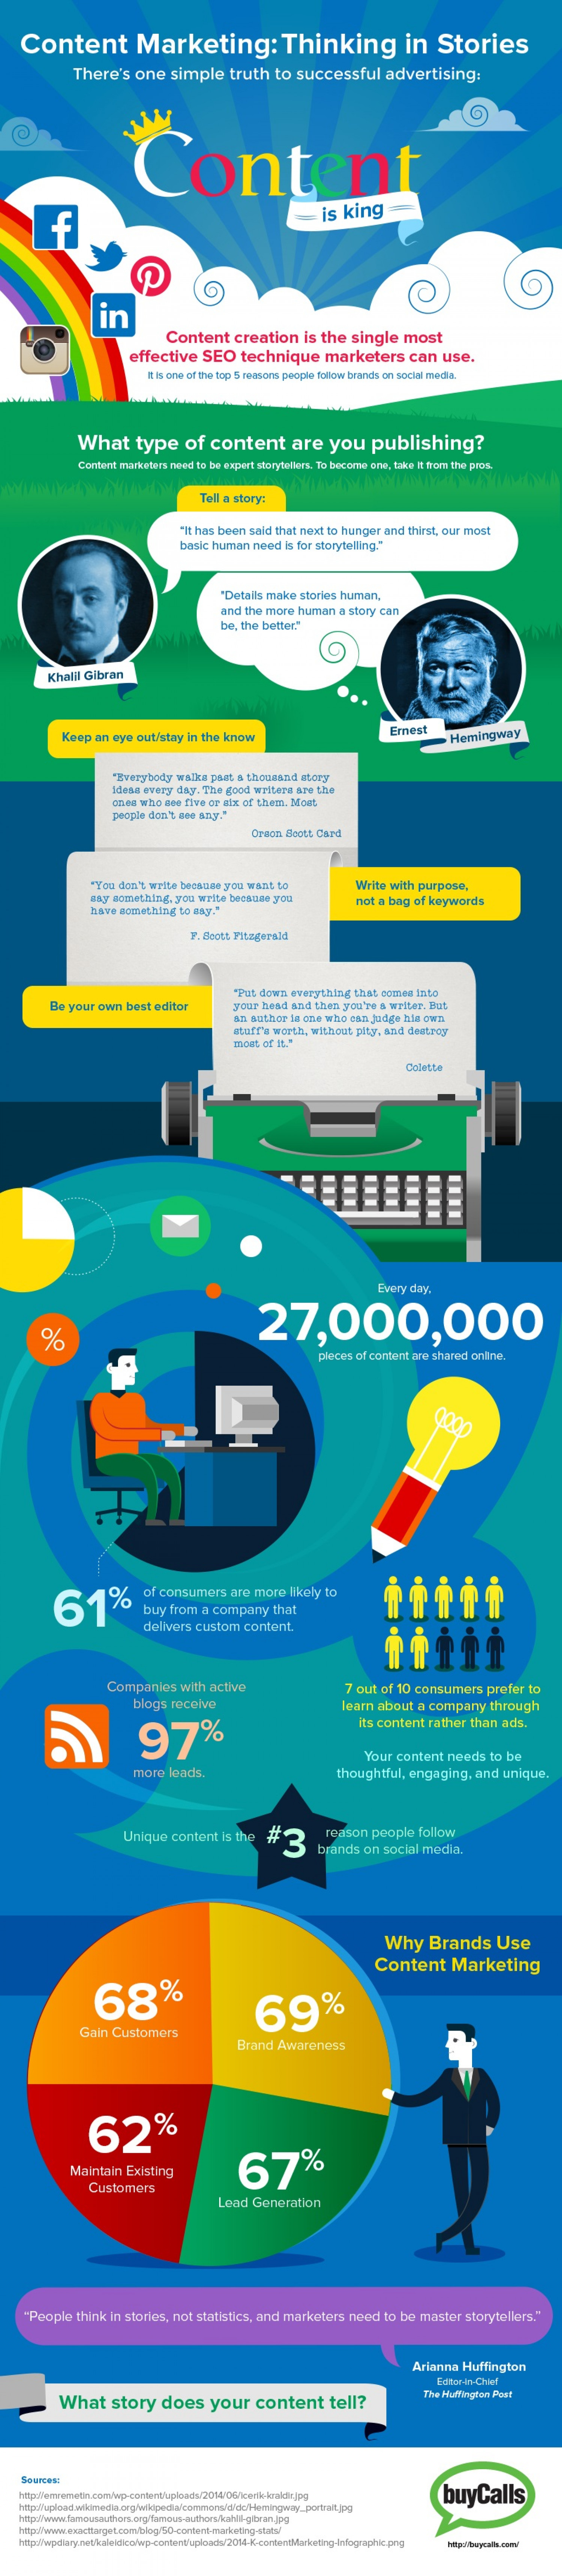 Content Marketing: Thinking in Stories Infographic